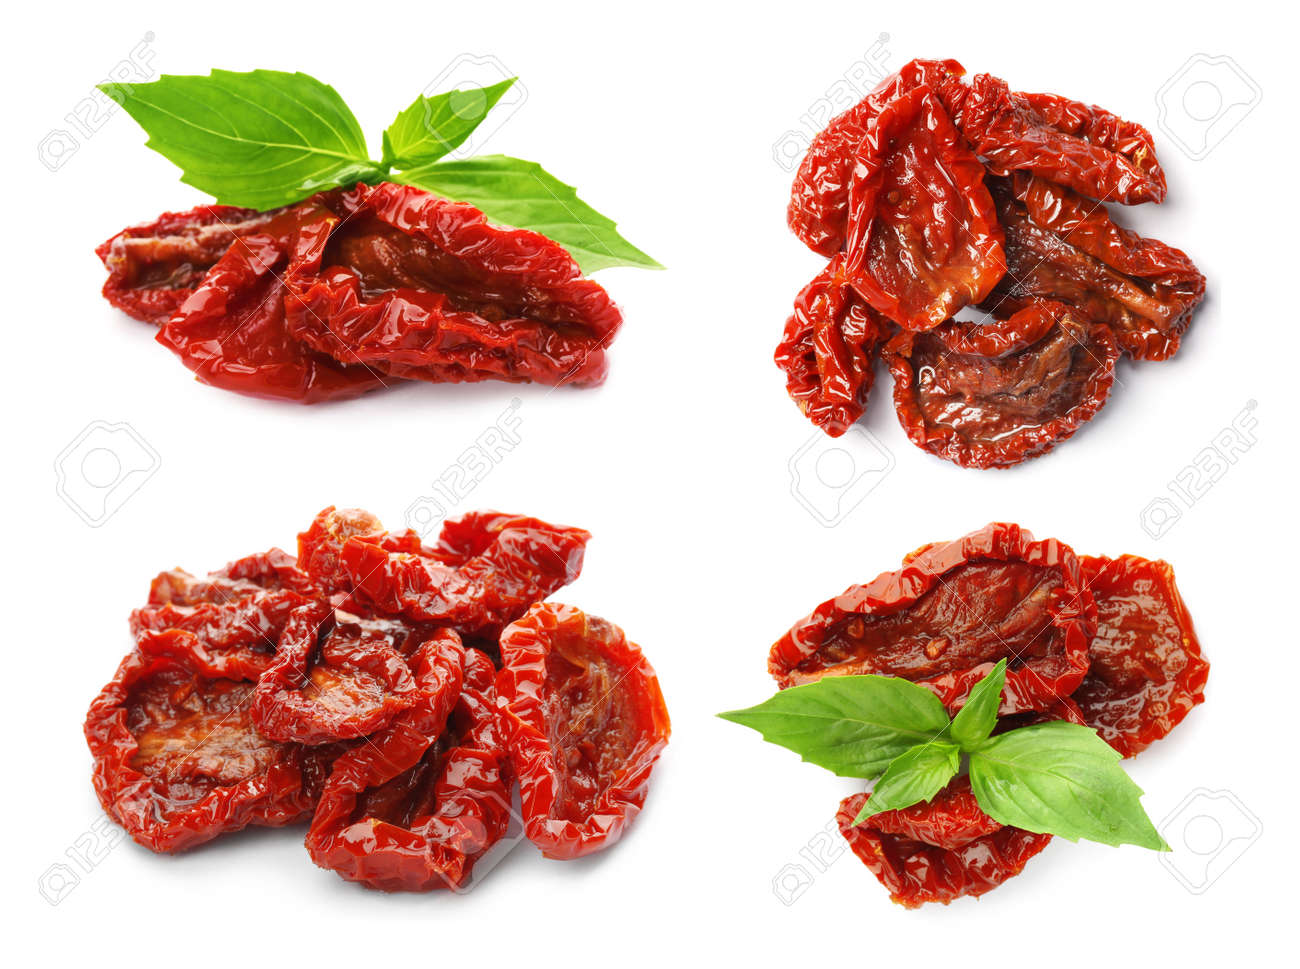 Set of tasty sun dried tomatoes on white background - 154572033